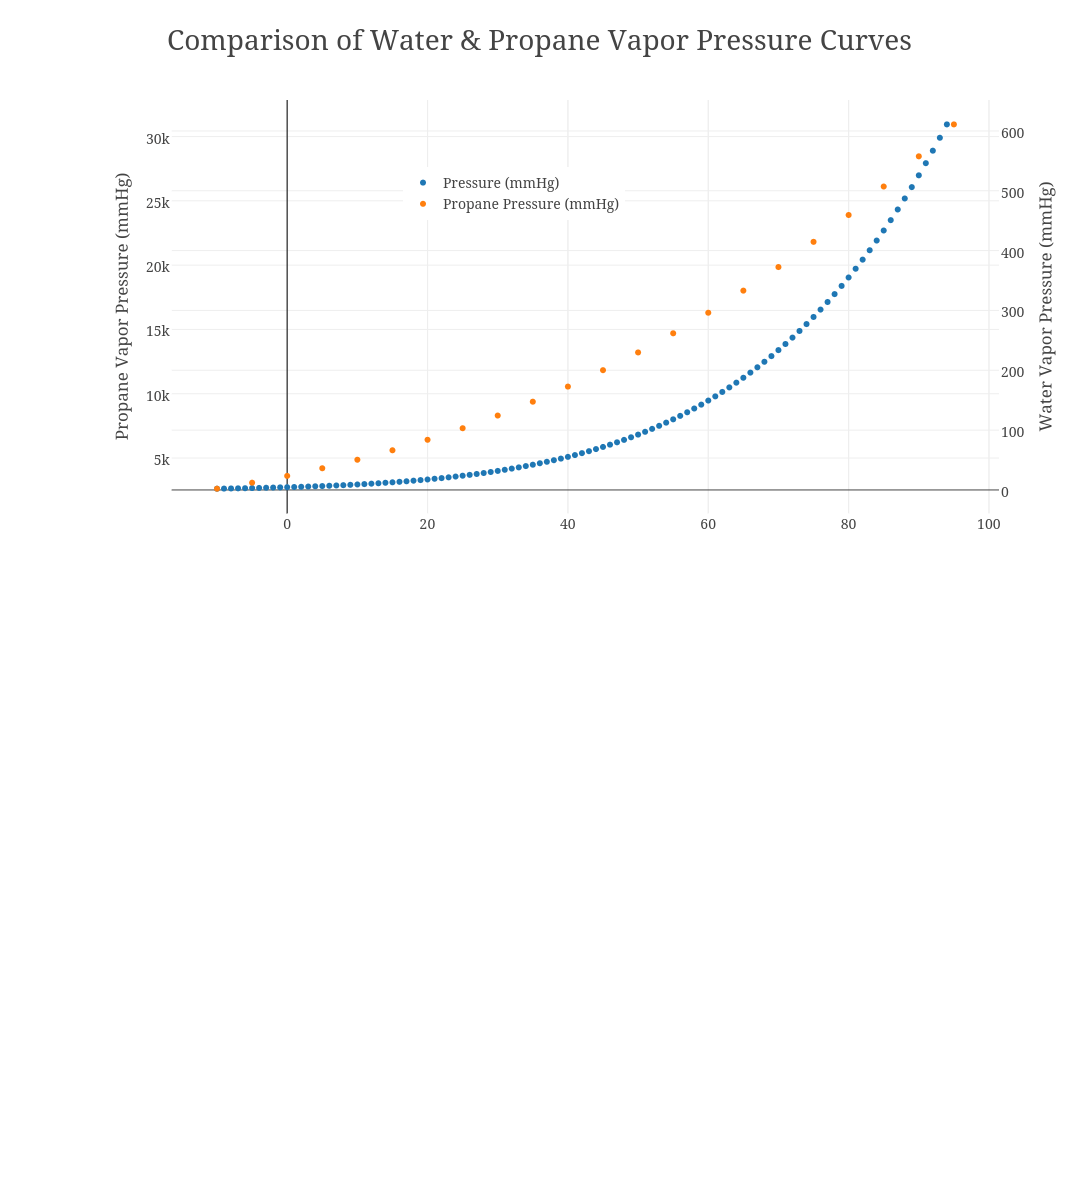 hight resolution of comparison of water propane vapor pressure curves scatter chart made by jeffcrumbaugh plotly